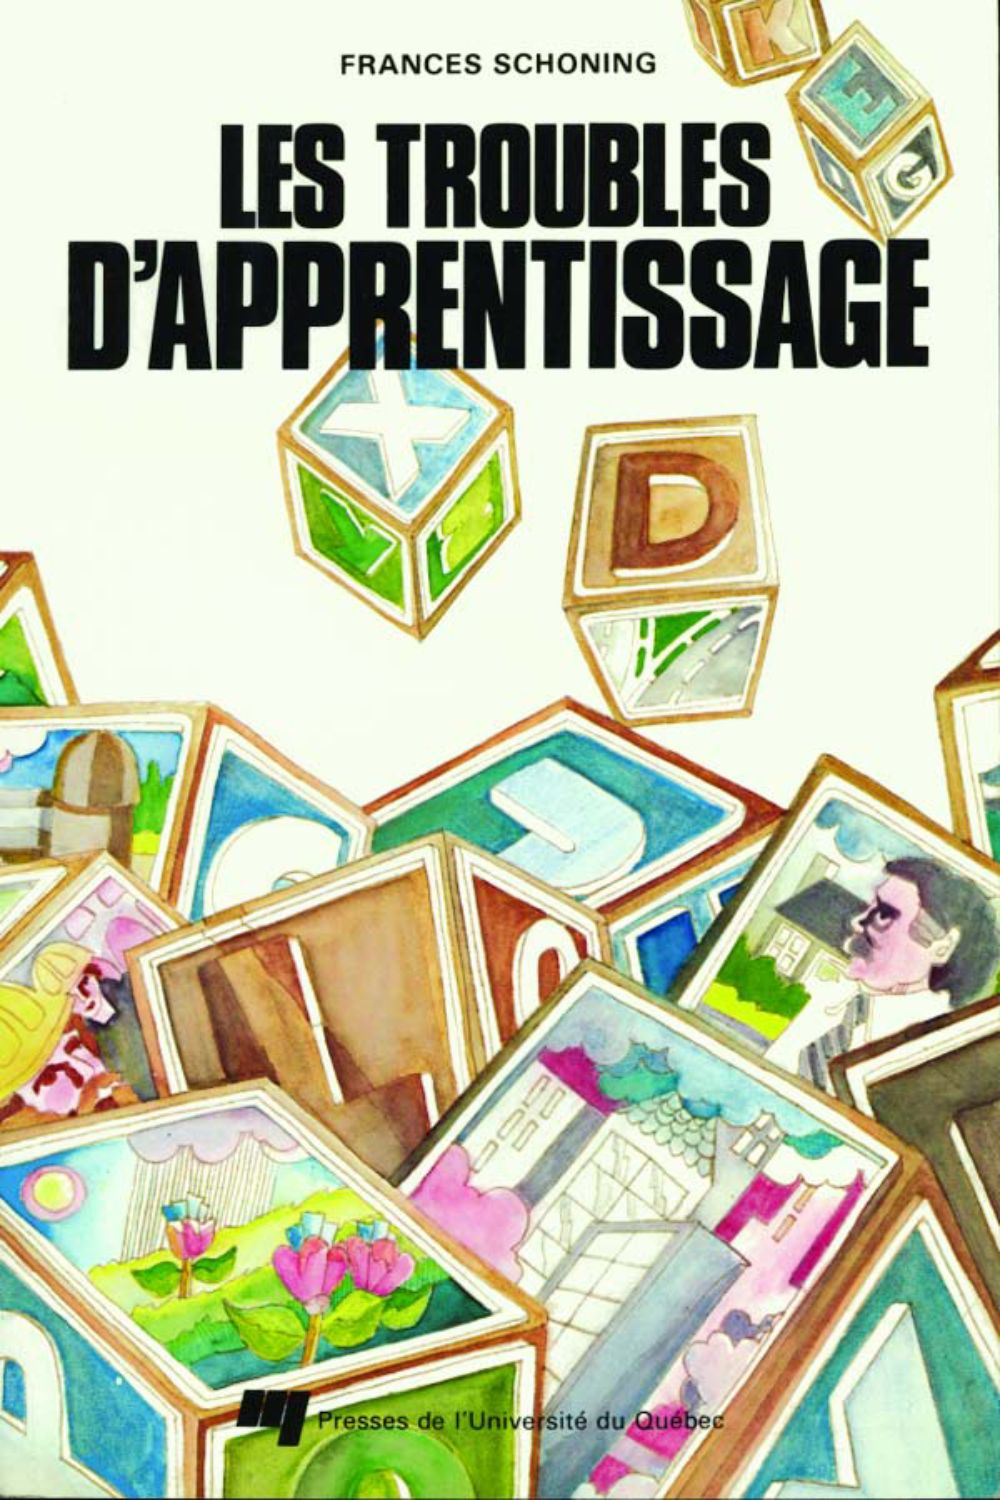 Les troubles d'apprentissage